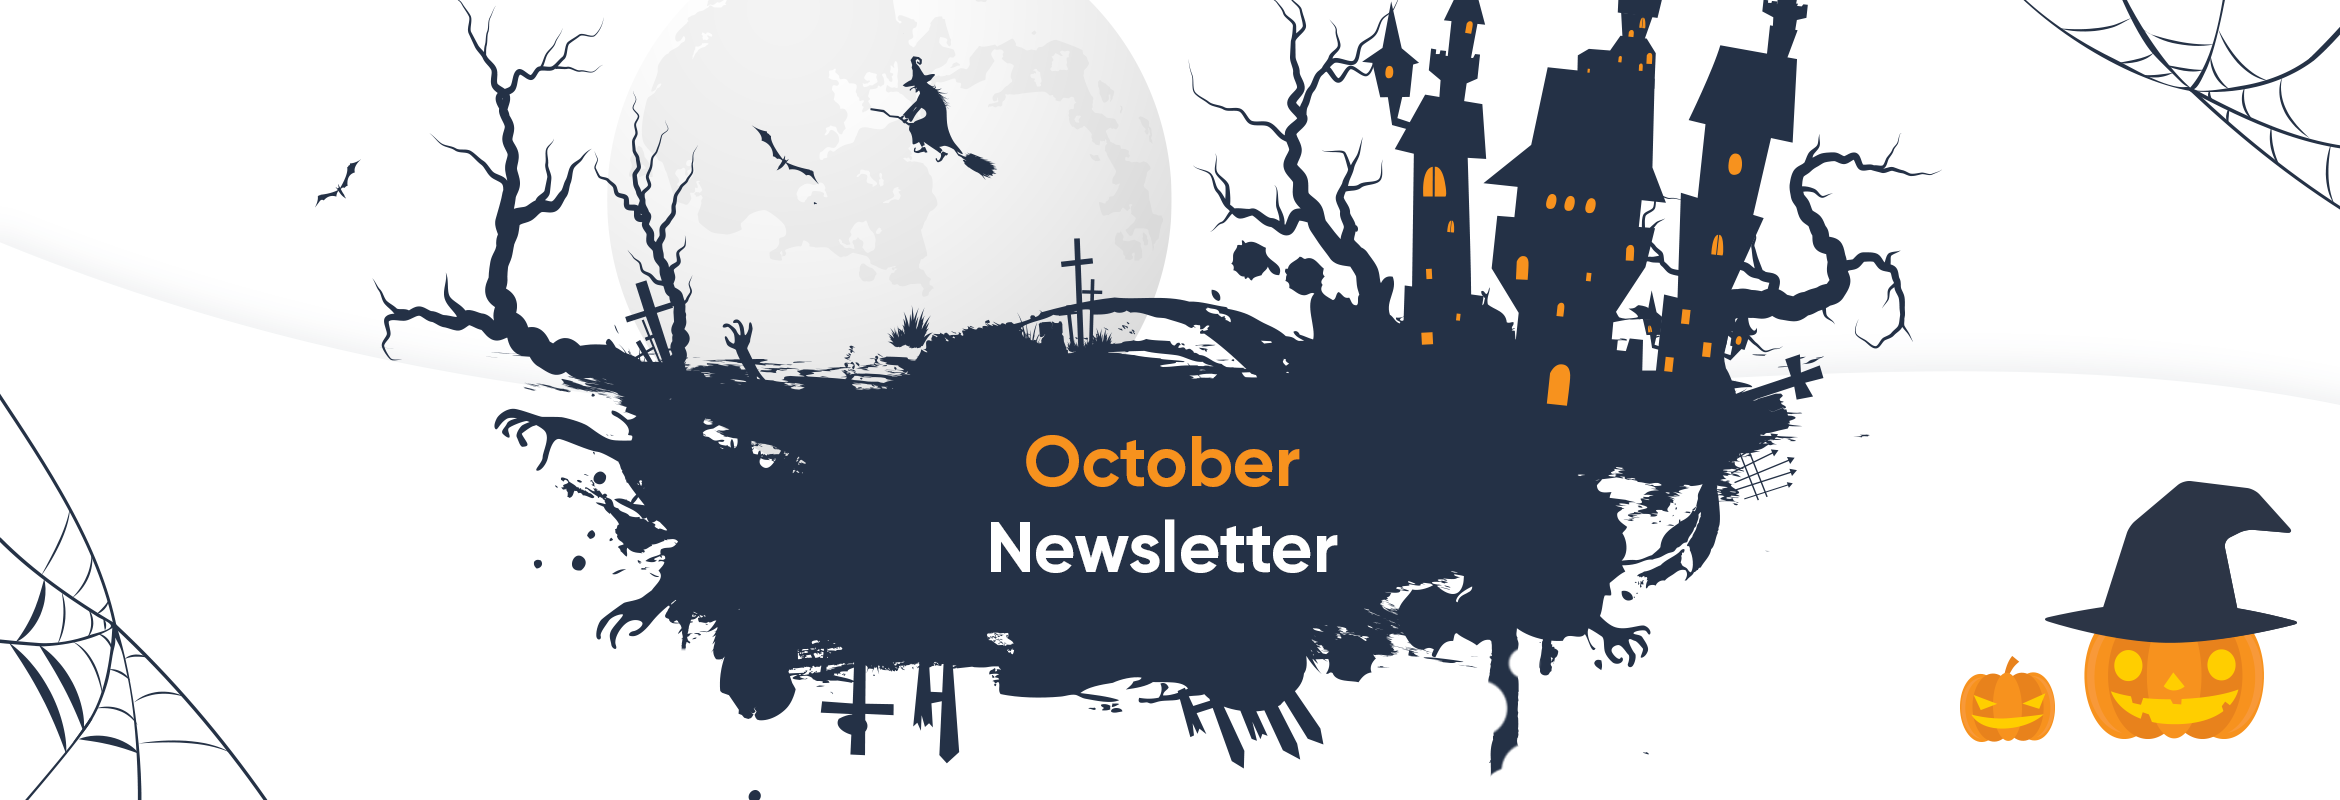 October Newsletter: Happy Halloween